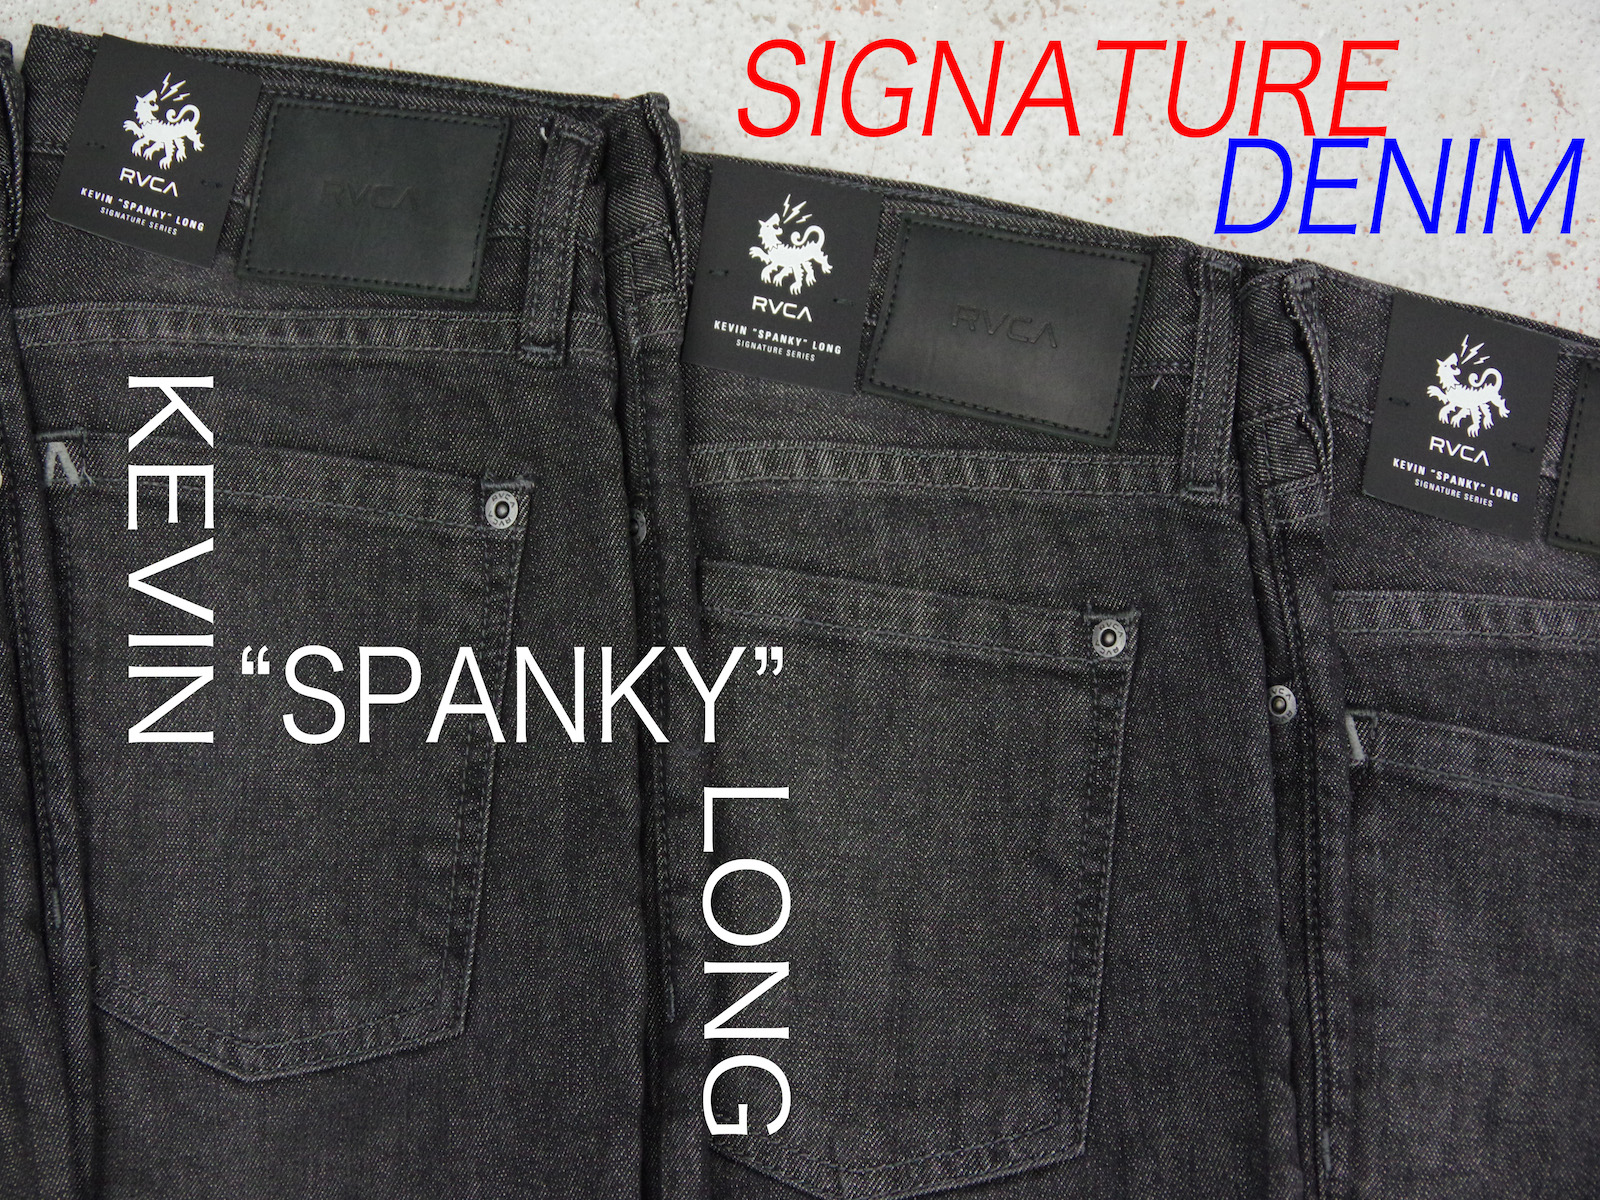 "<RVCA> KEVIN ""SPANKY"" LONG Signature Denim"